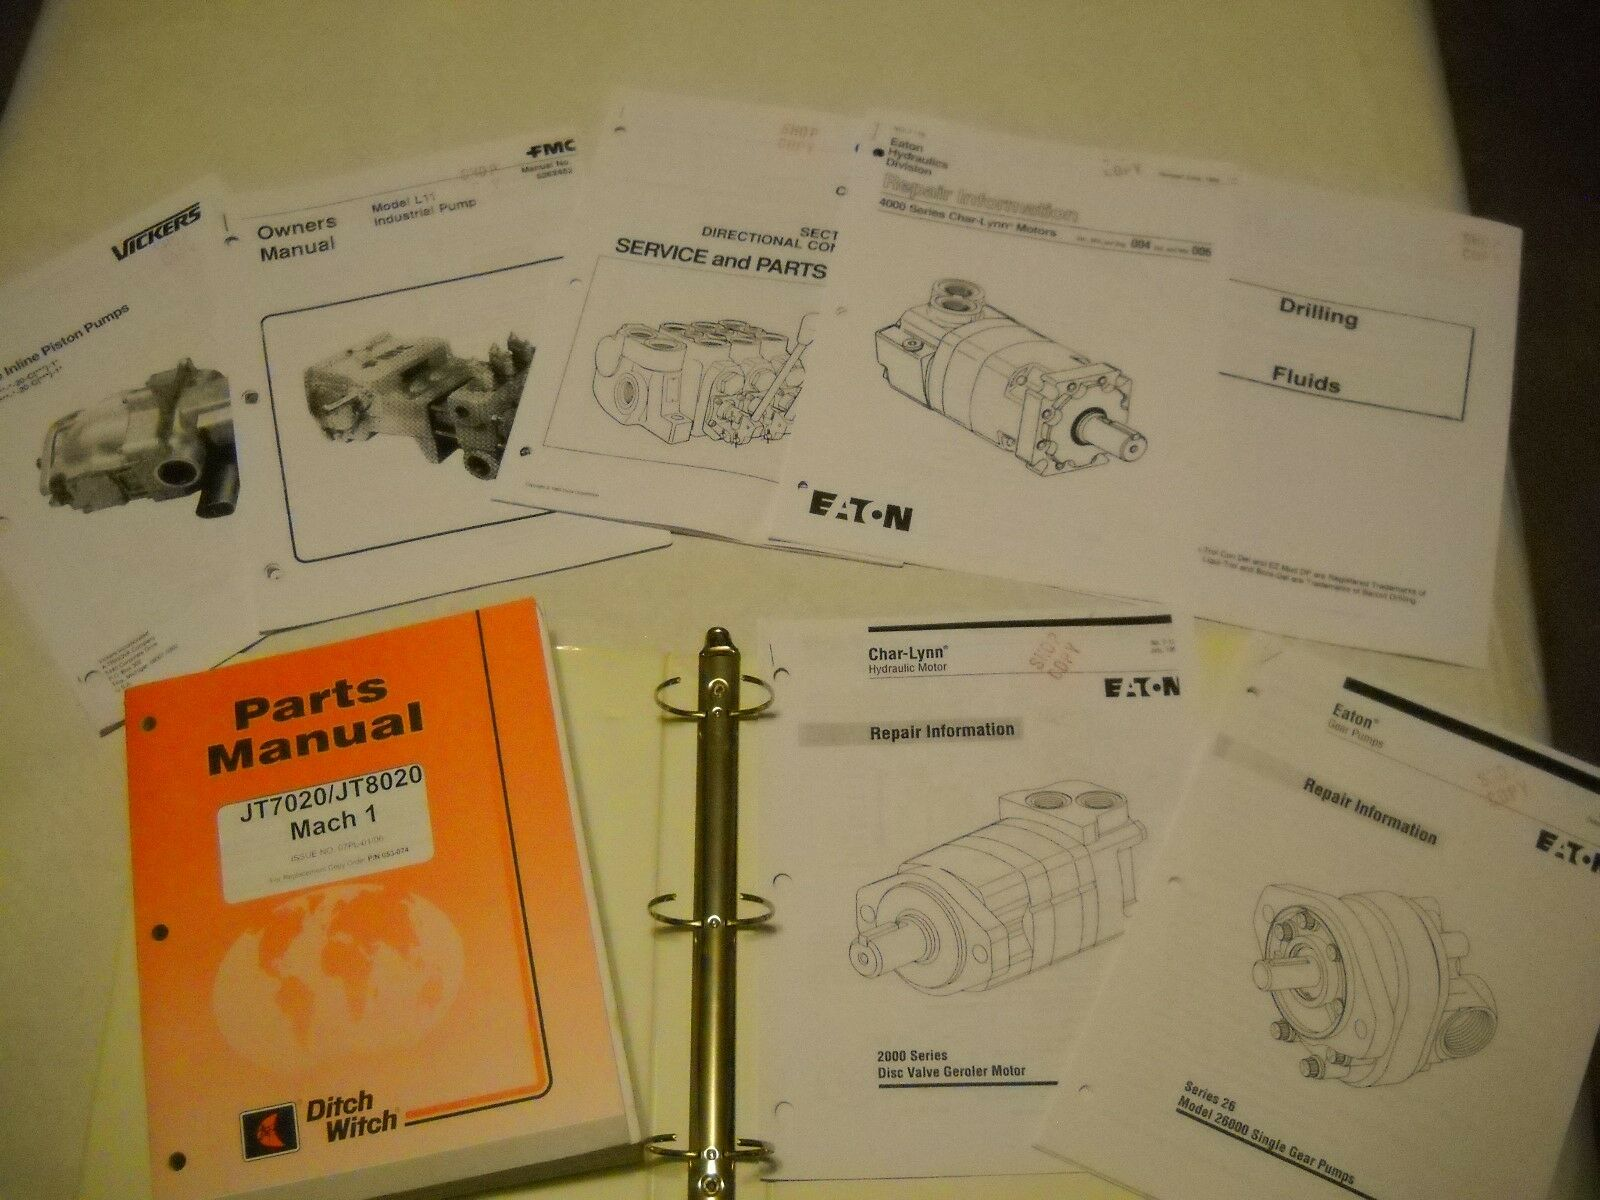 DITCH WITCH JT8020 SERVICE REPAIR PARTS manuals 1 of 7Only 1 available ...